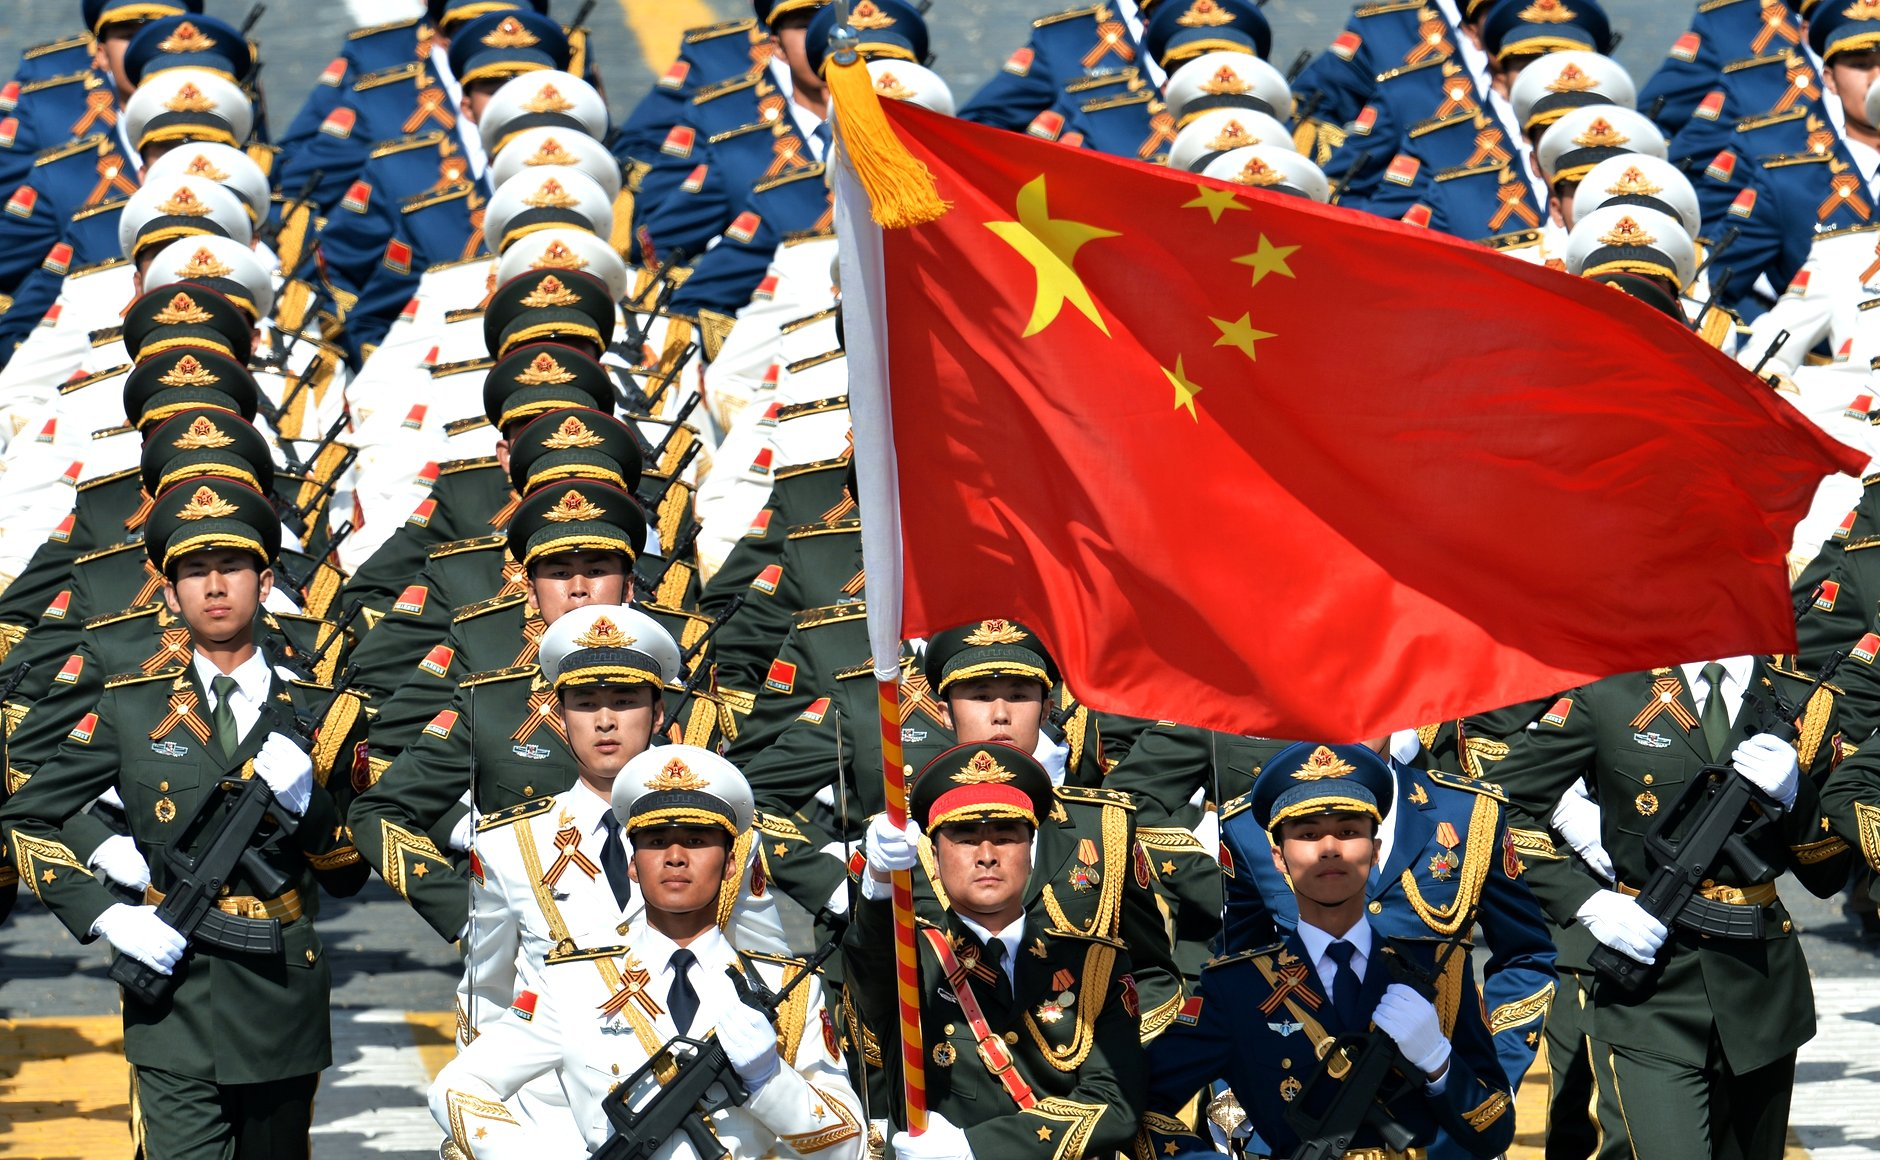 Chinese troops marching in Moscow parade 2015